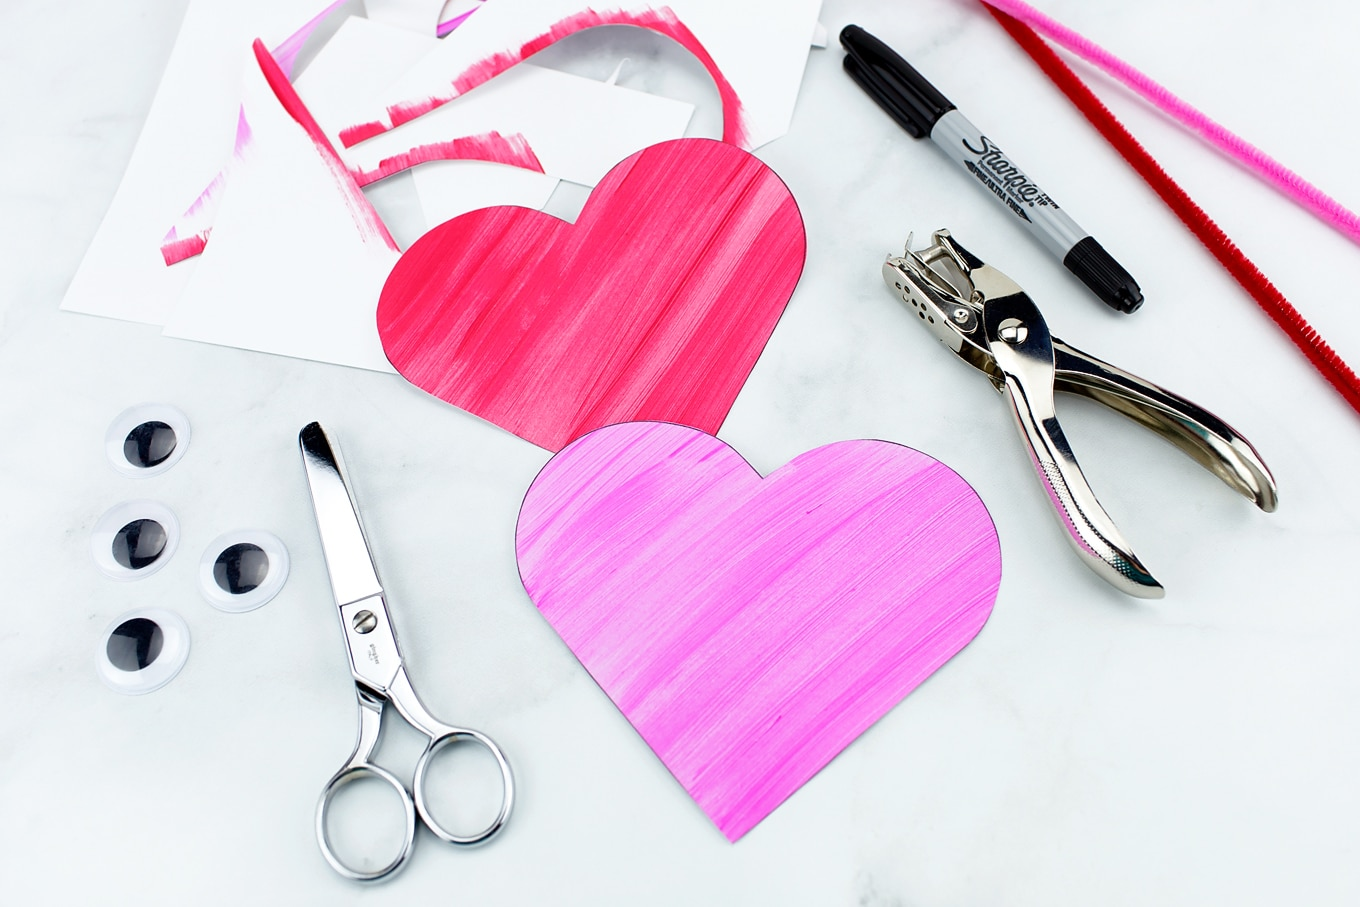 Cutting Out Heart Buddies Easy Valentine's Day Craft for Kids